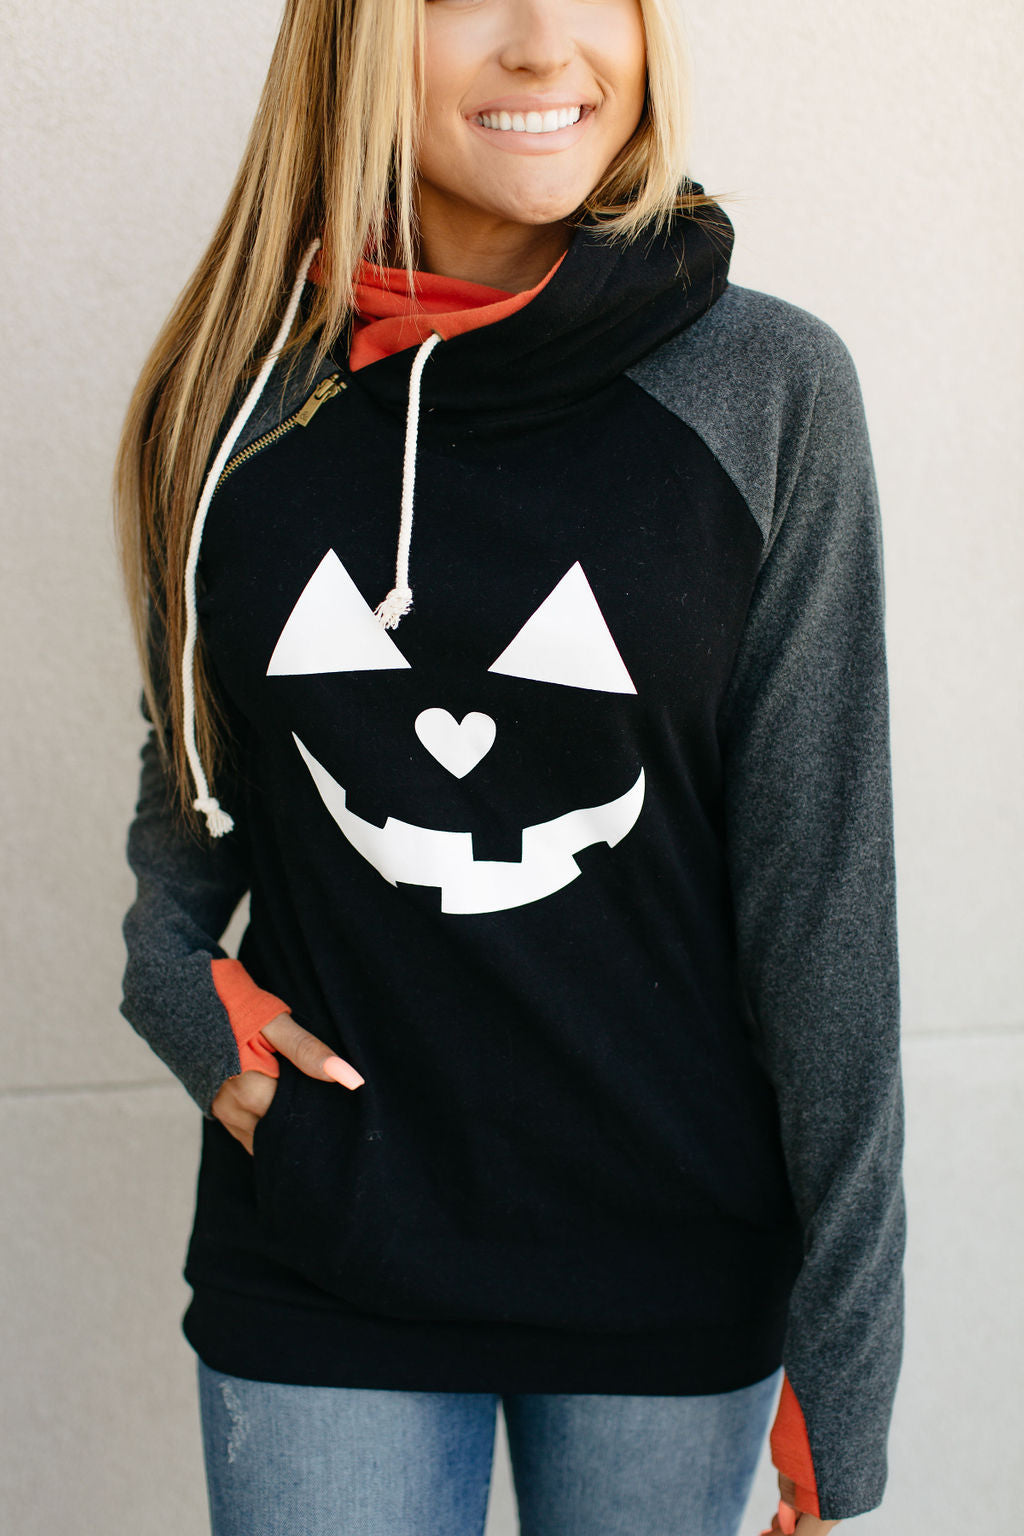 Doublehood Sweatshirt in Pumpkin Spice